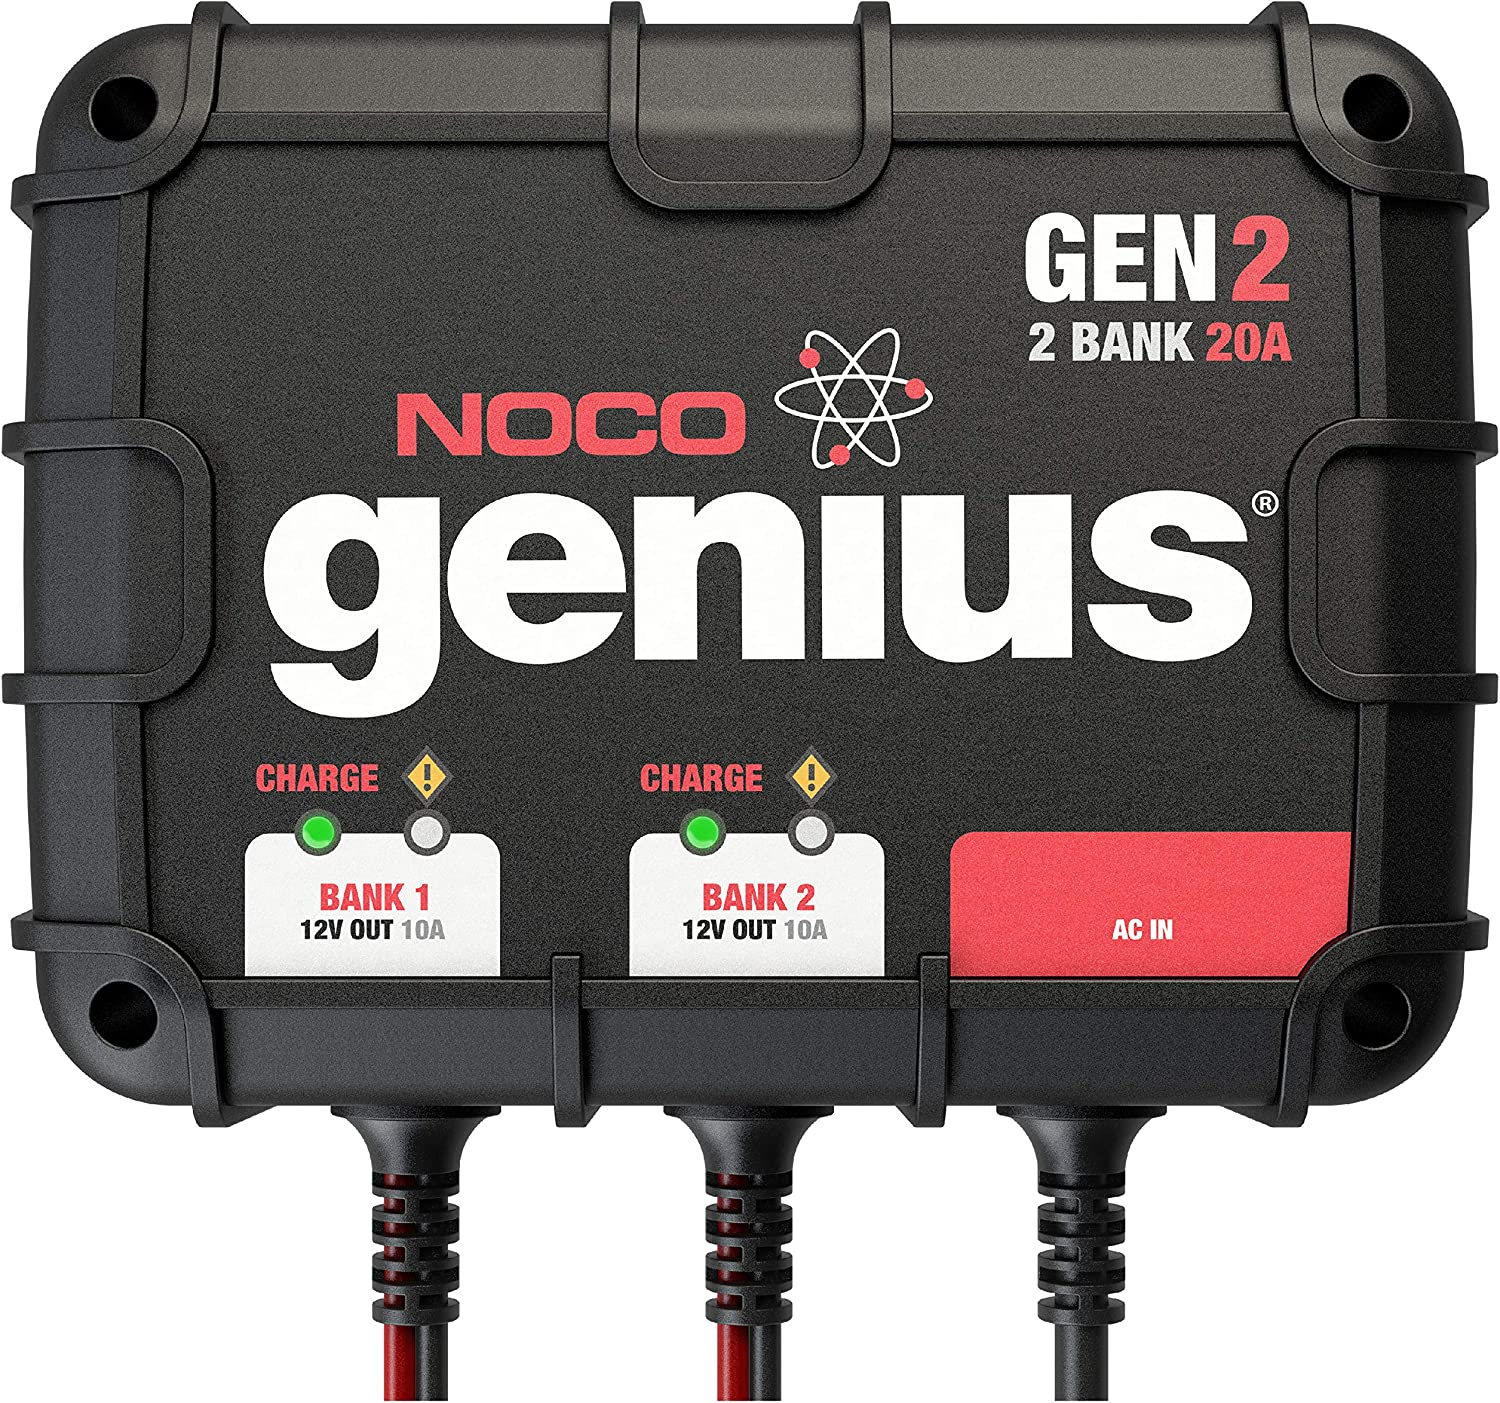 NOCO Genius GEN2, 2-Bank, 20-Amp (10-Amp Per Bank) Fully-Automatic Smart Marine Charger, 12V Onboard Battery Charger And Battery Maintainer: Automotive